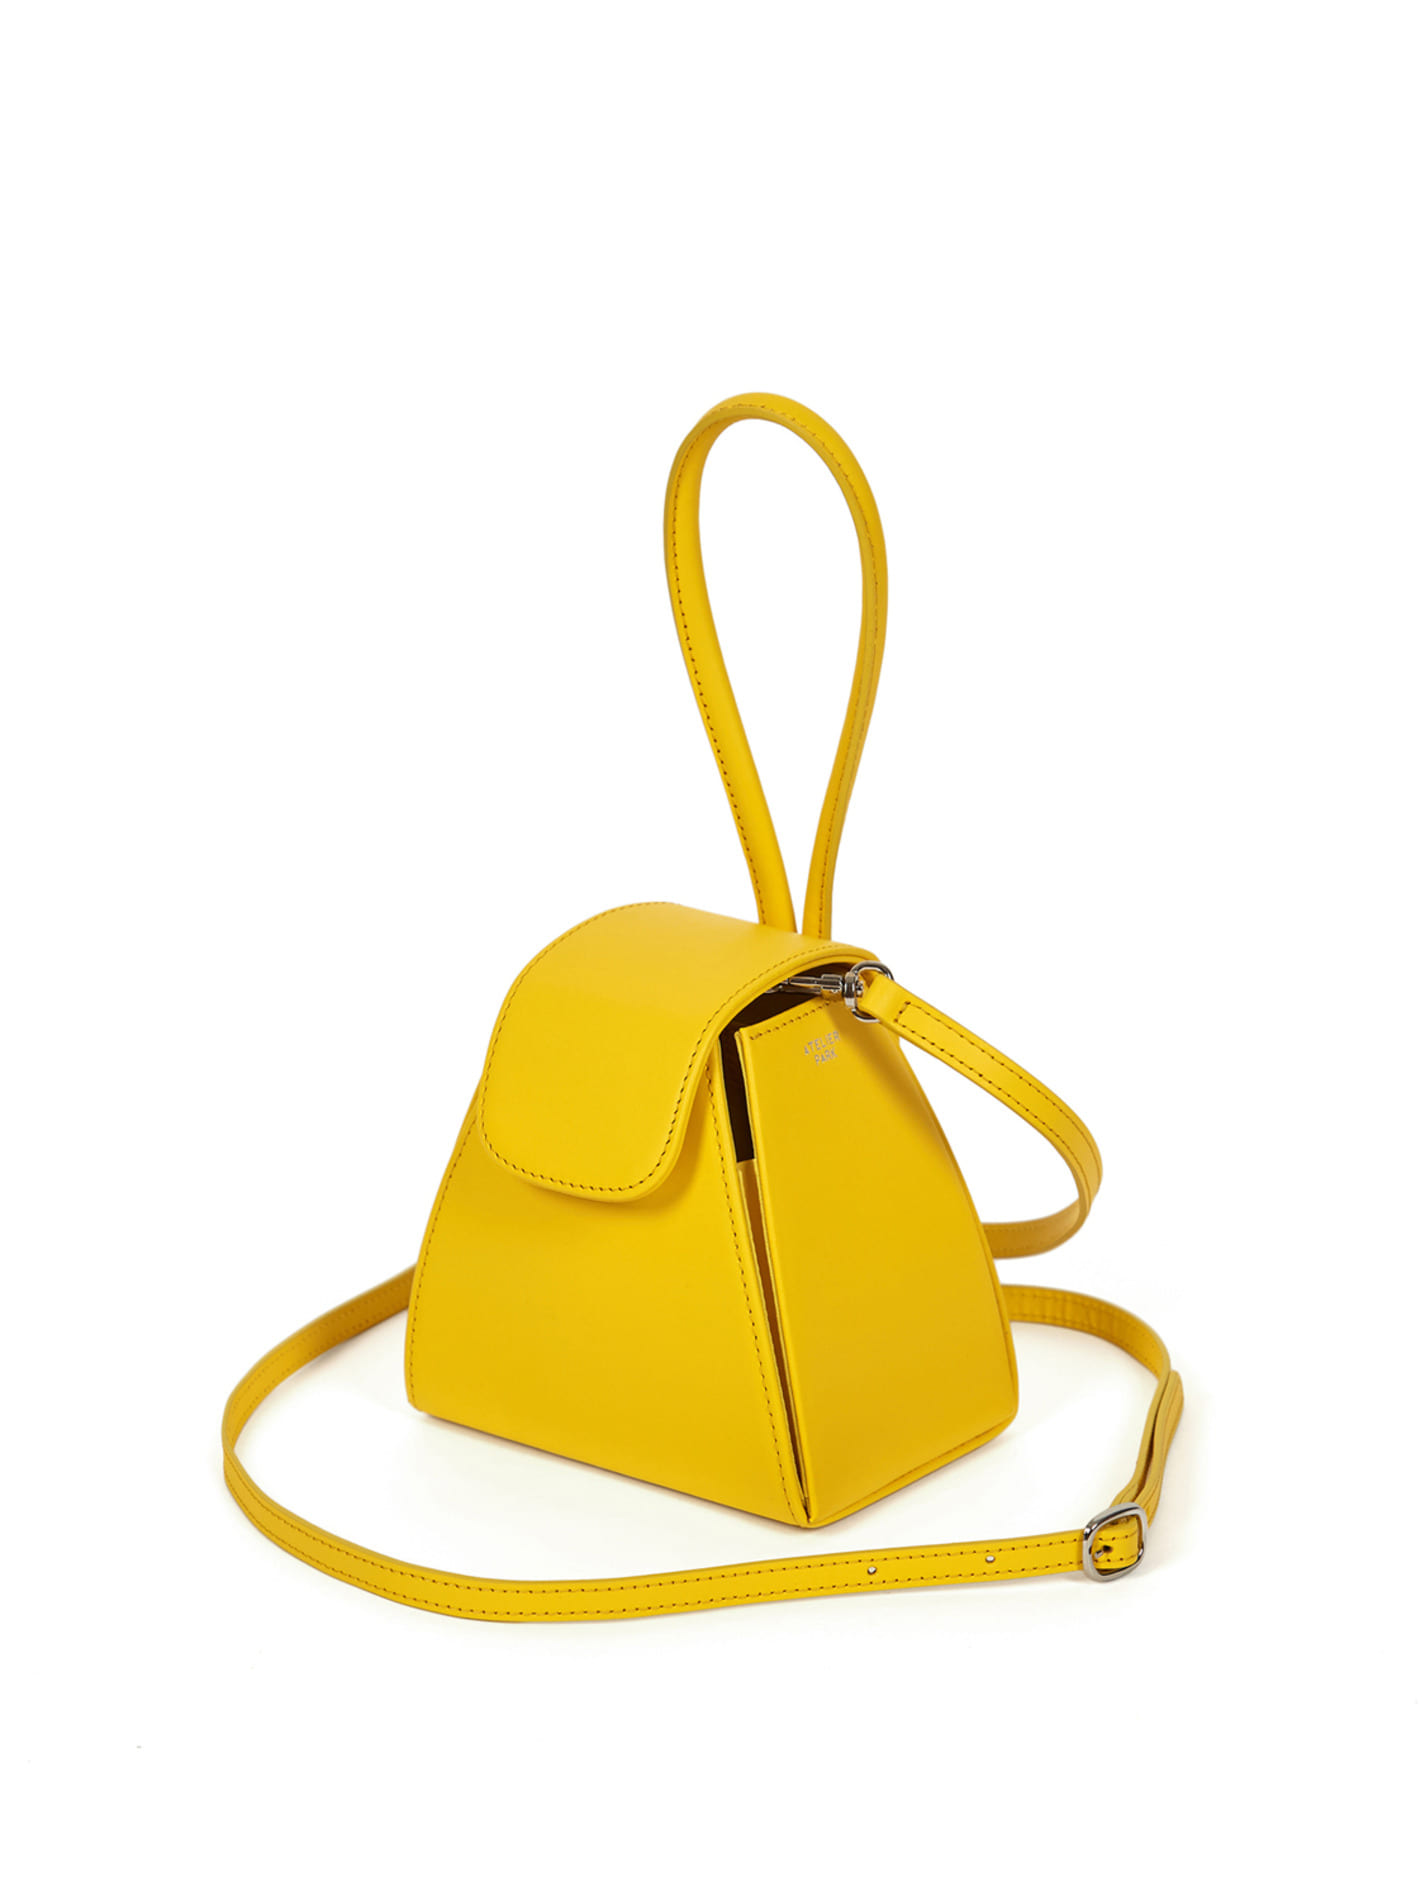 ATELIER PARKCOLOR BLOCK HANDLE BAG -YELLOW (레더스트랩포함)